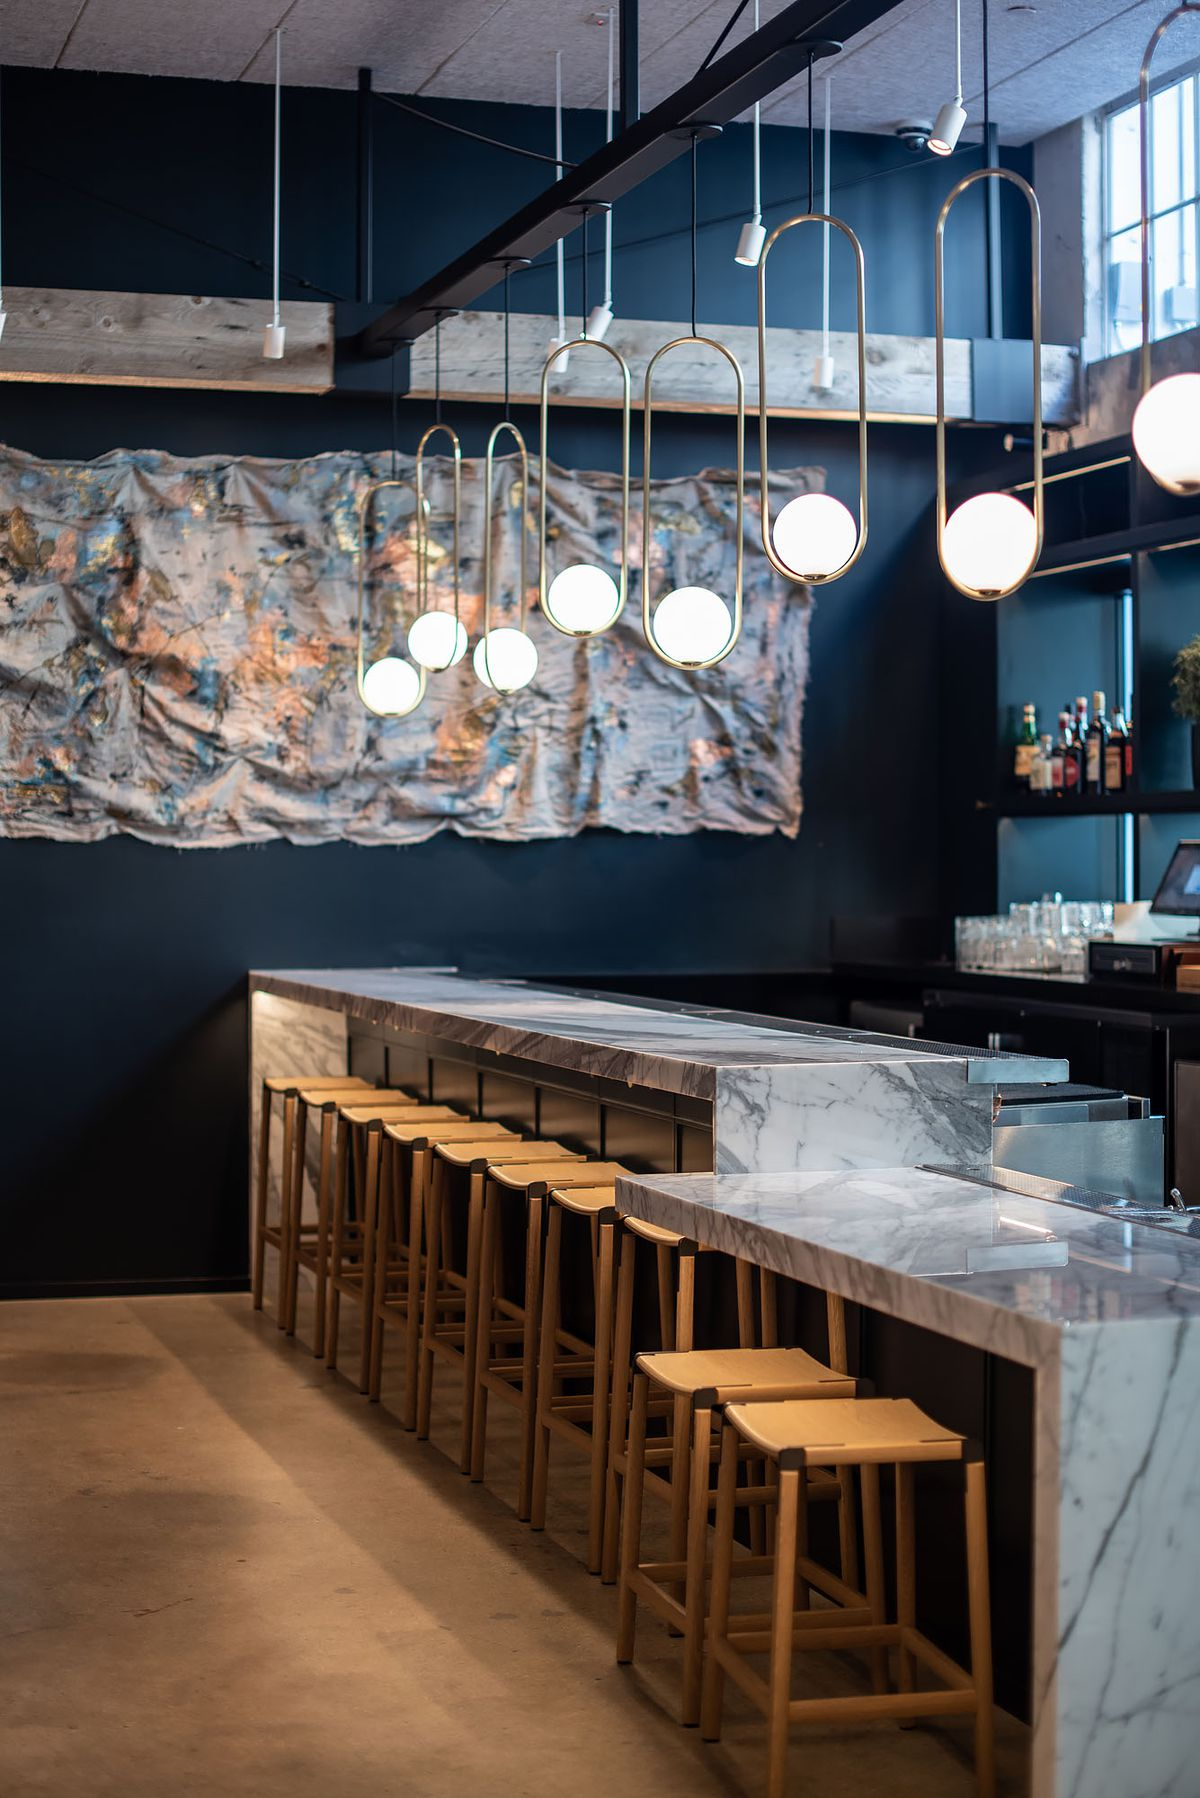 A short marble bar with wooden stools at a hip new restaurant.